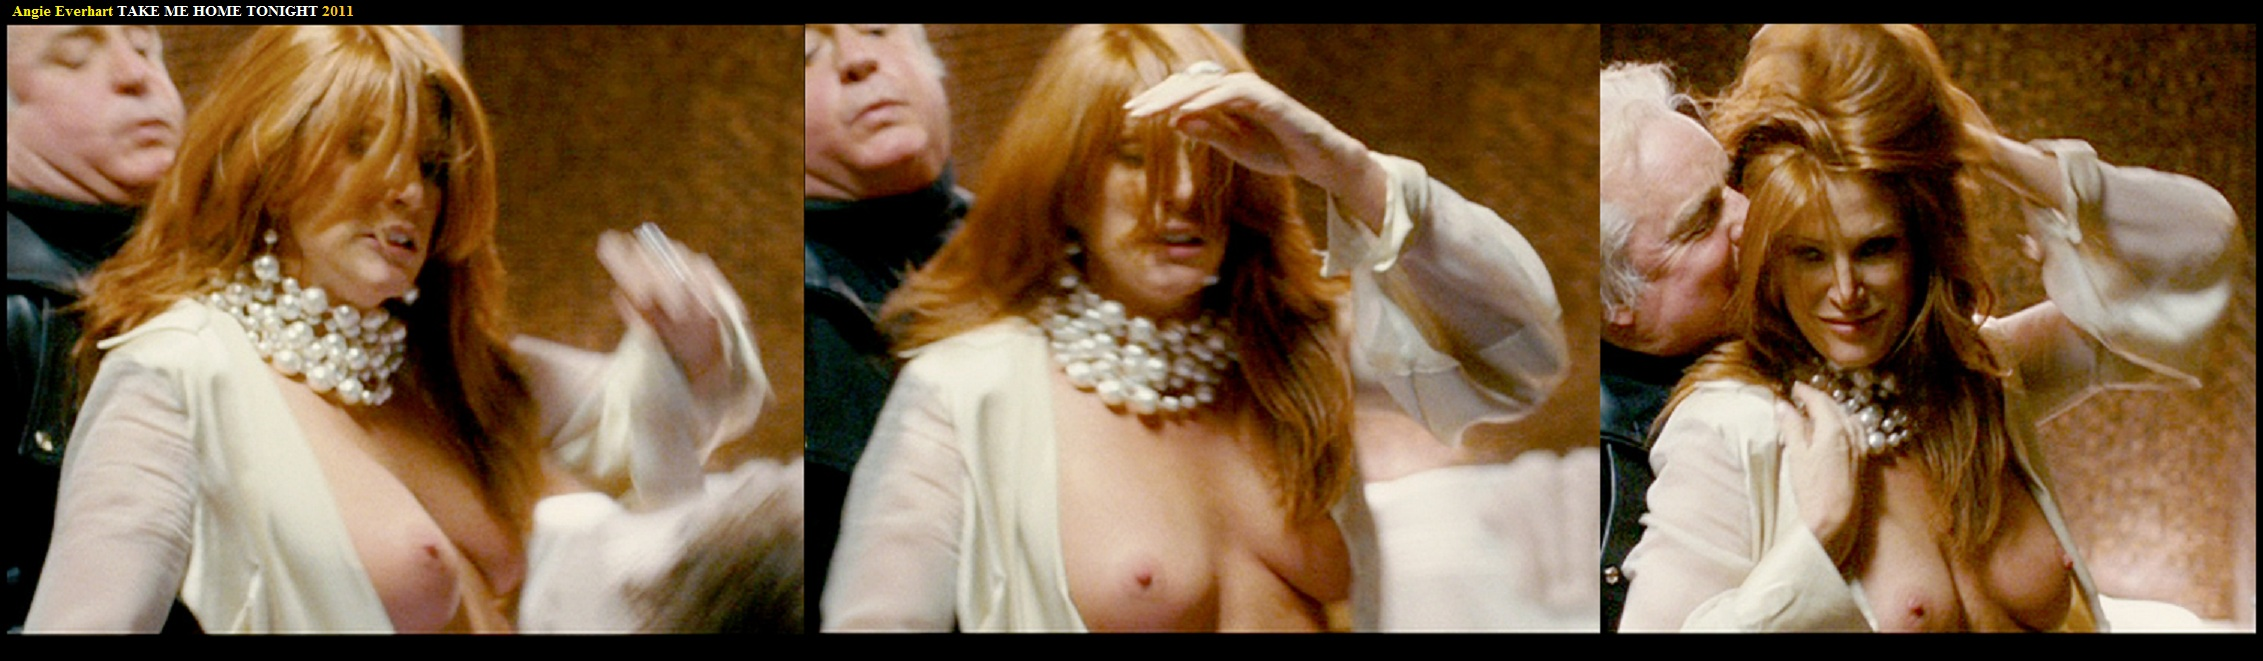 naked angie everhart in take me home tonight < ancensored